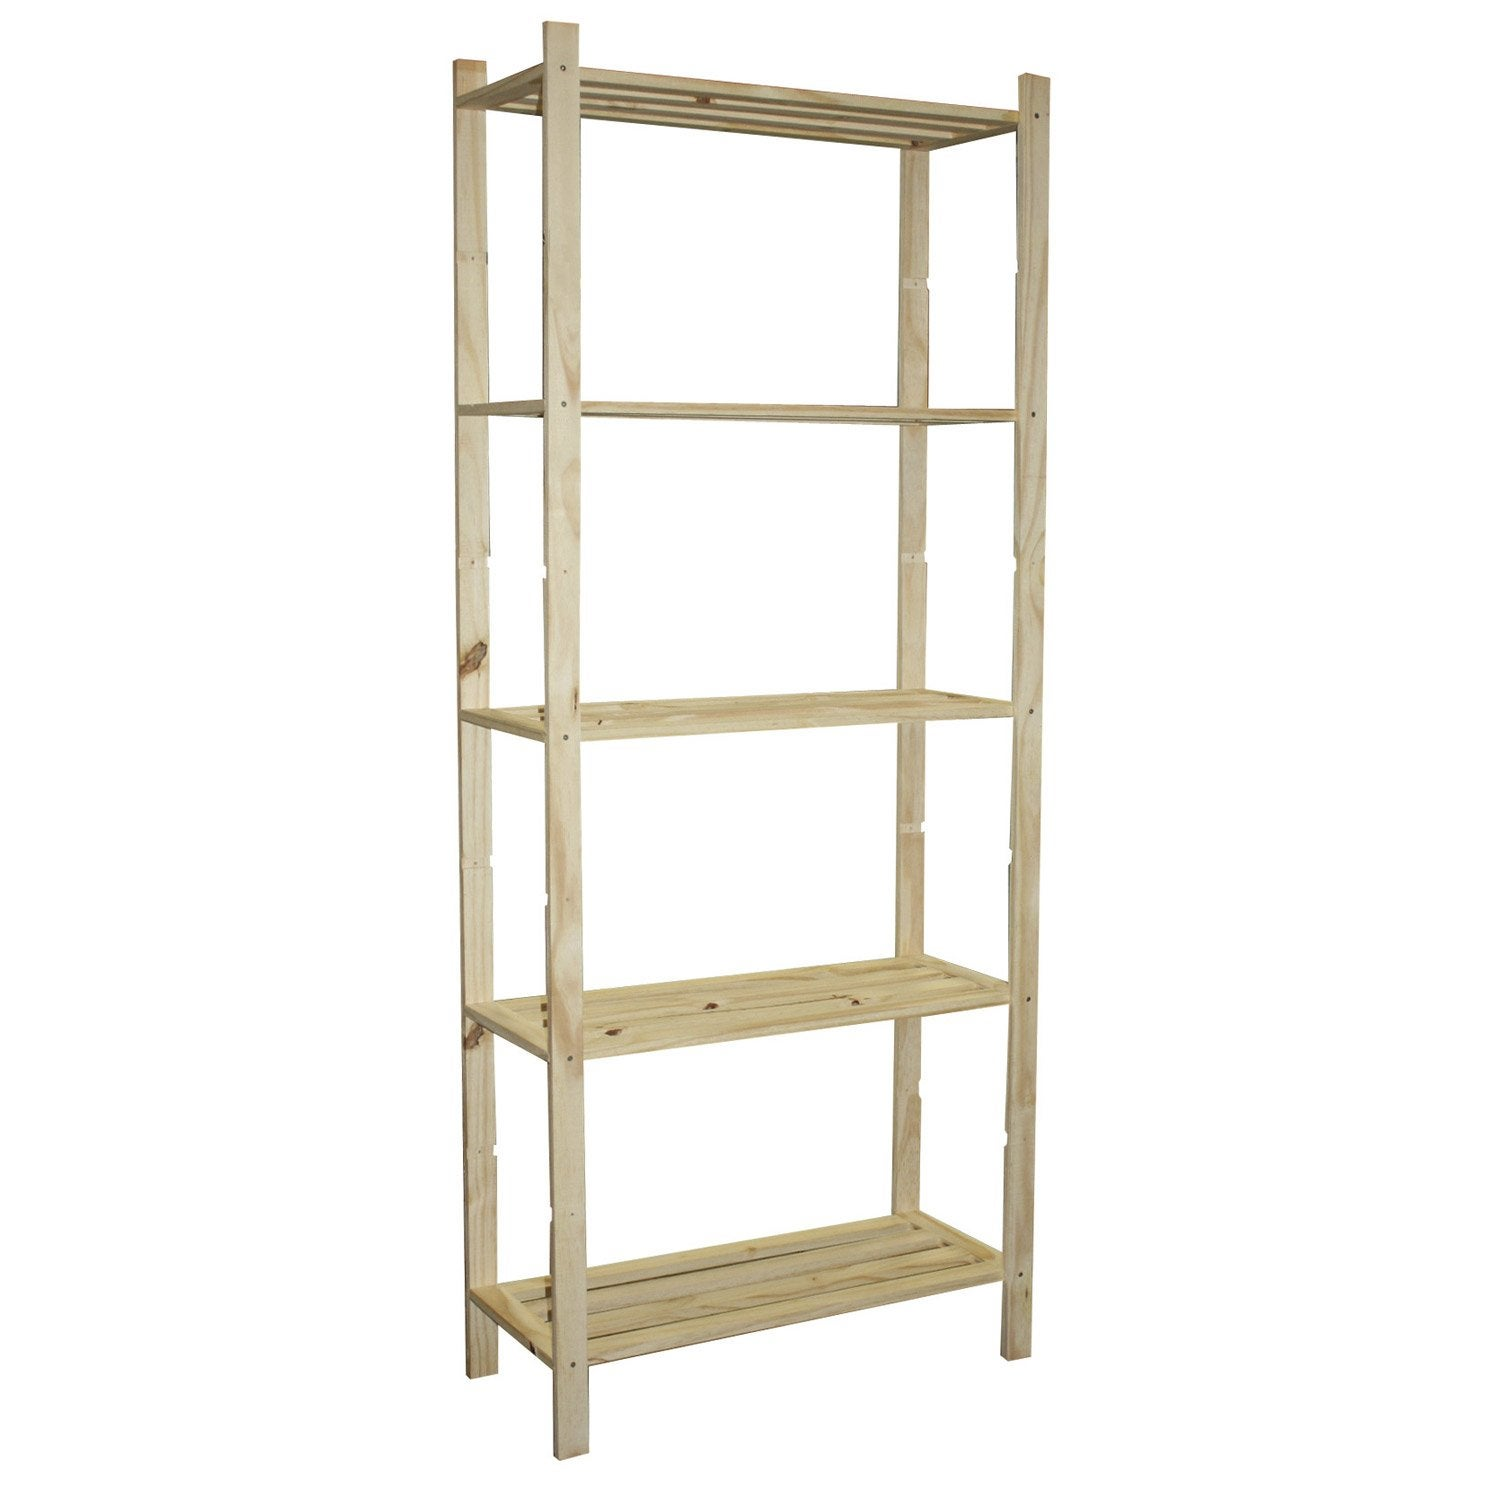 Etag re pin 5 tablettes x x cm leroy merlin - Leroy merlin etagere bois ...